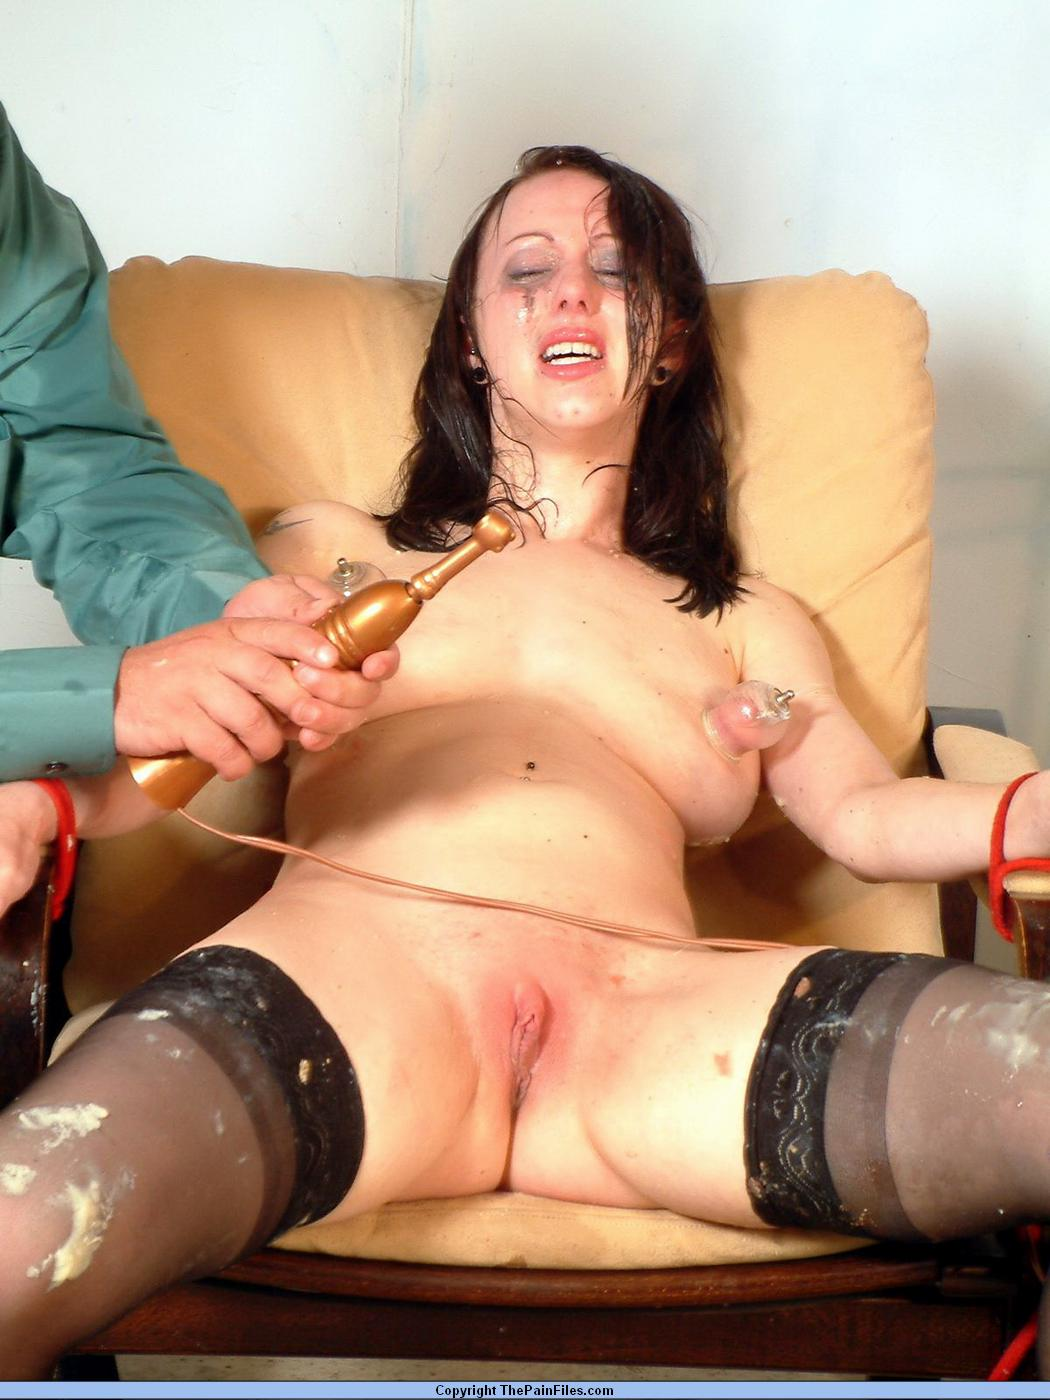 Free Humiliation Porn Pics and Humiliation Pictures -